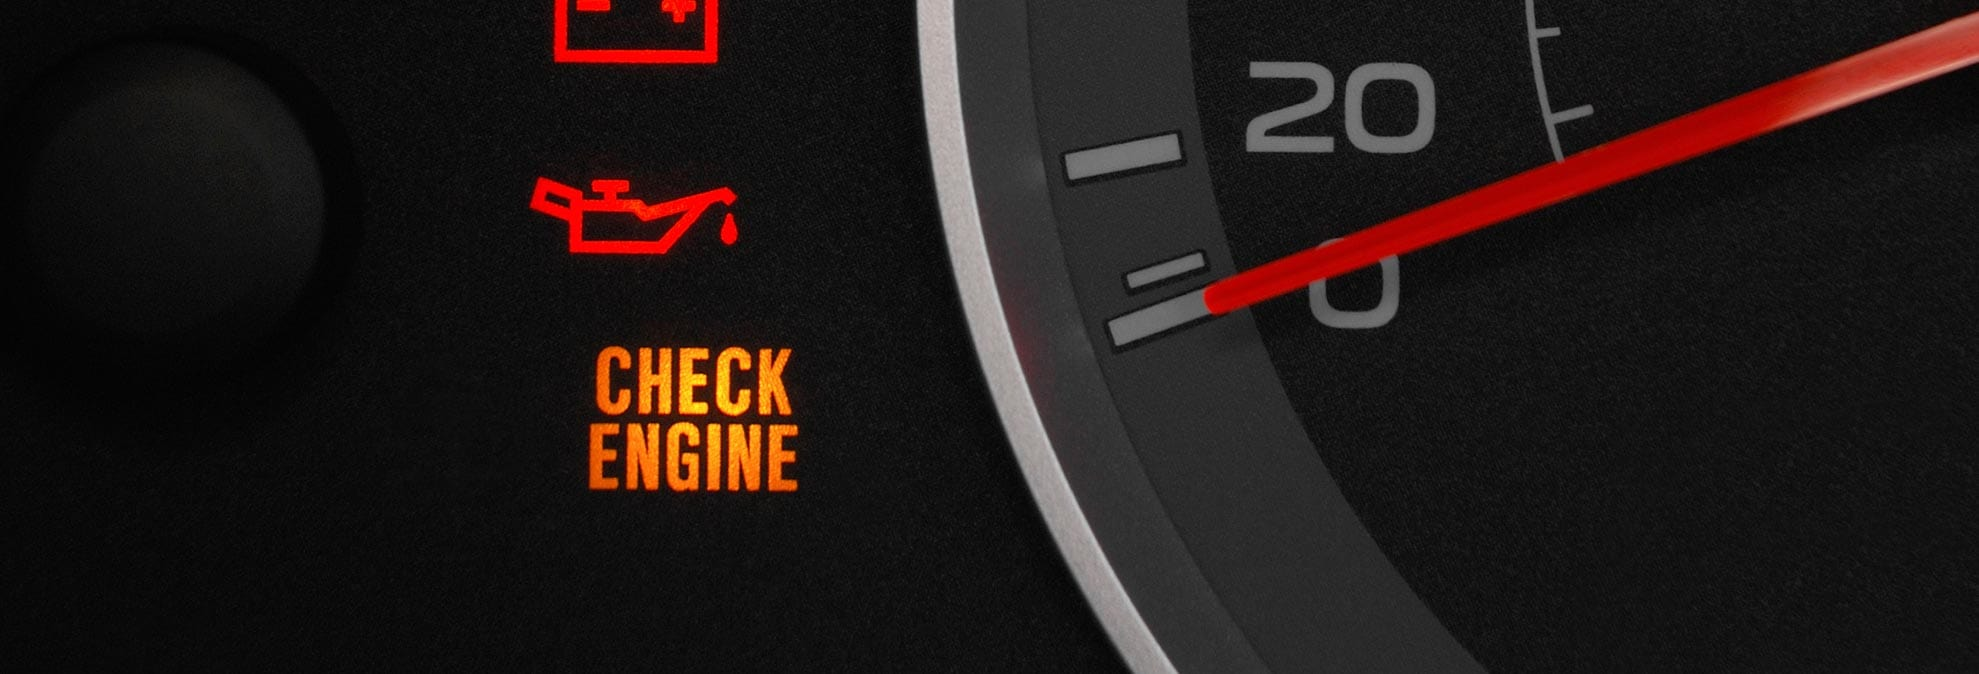 What Does The Check Engine Light Mean Consumer Reports - Car image sign of dashboardcar warning signs you should not ignore